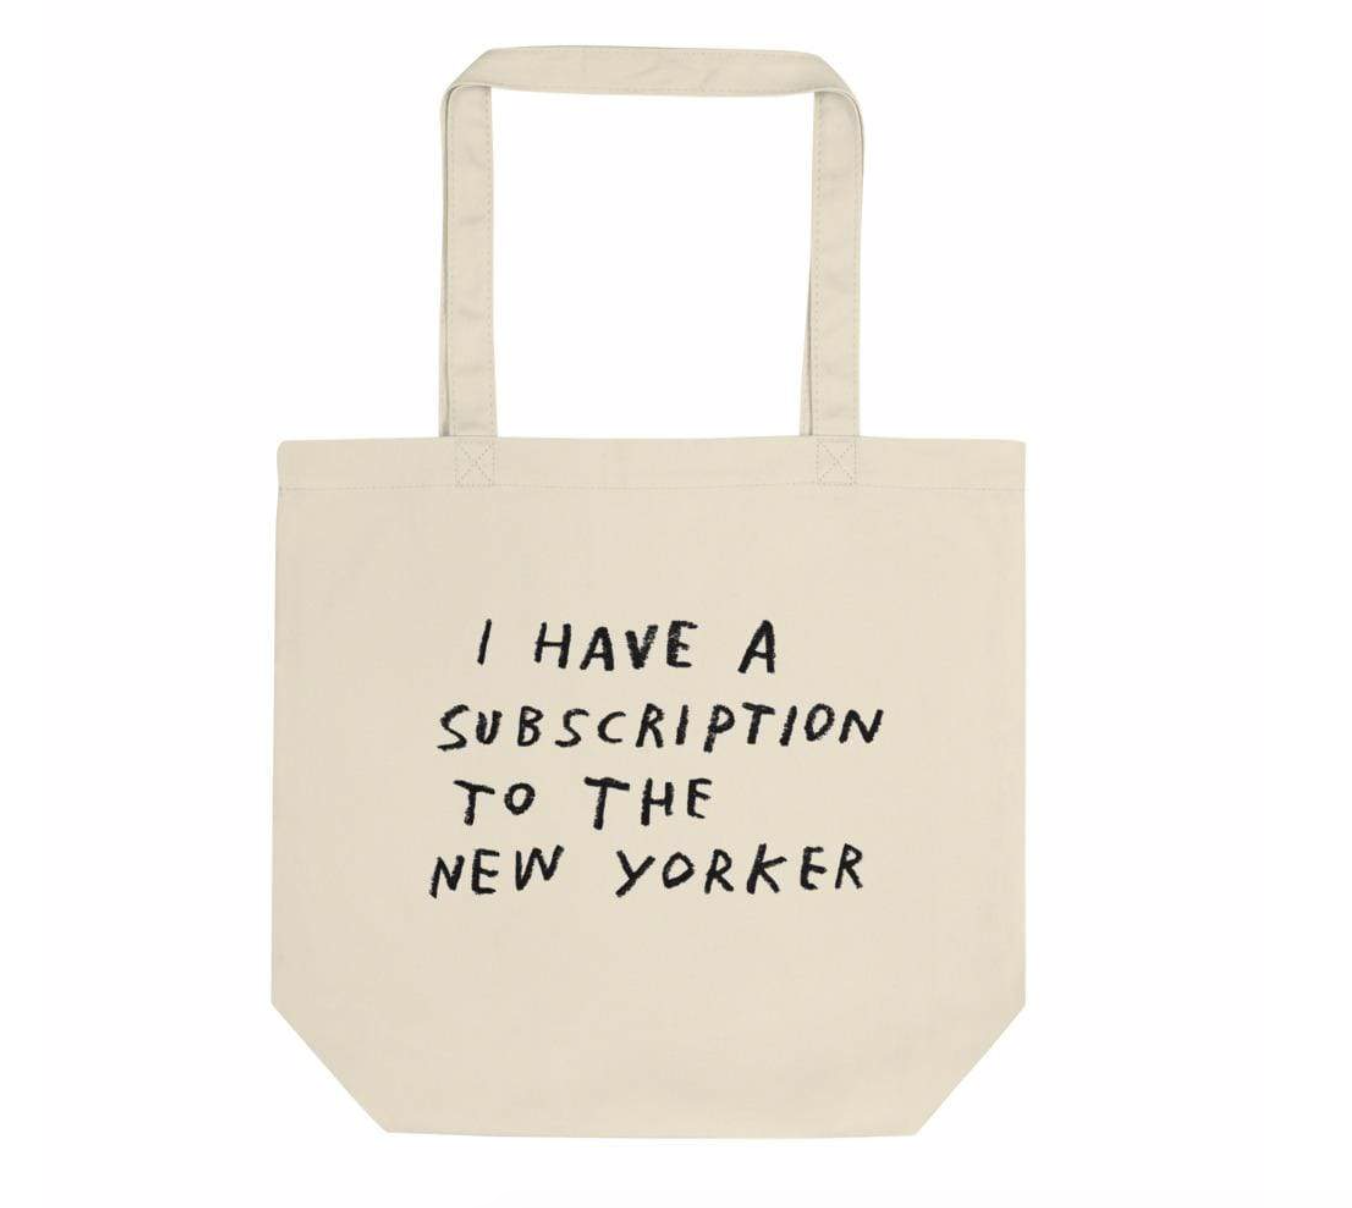 New Yorker tote by Adam JK